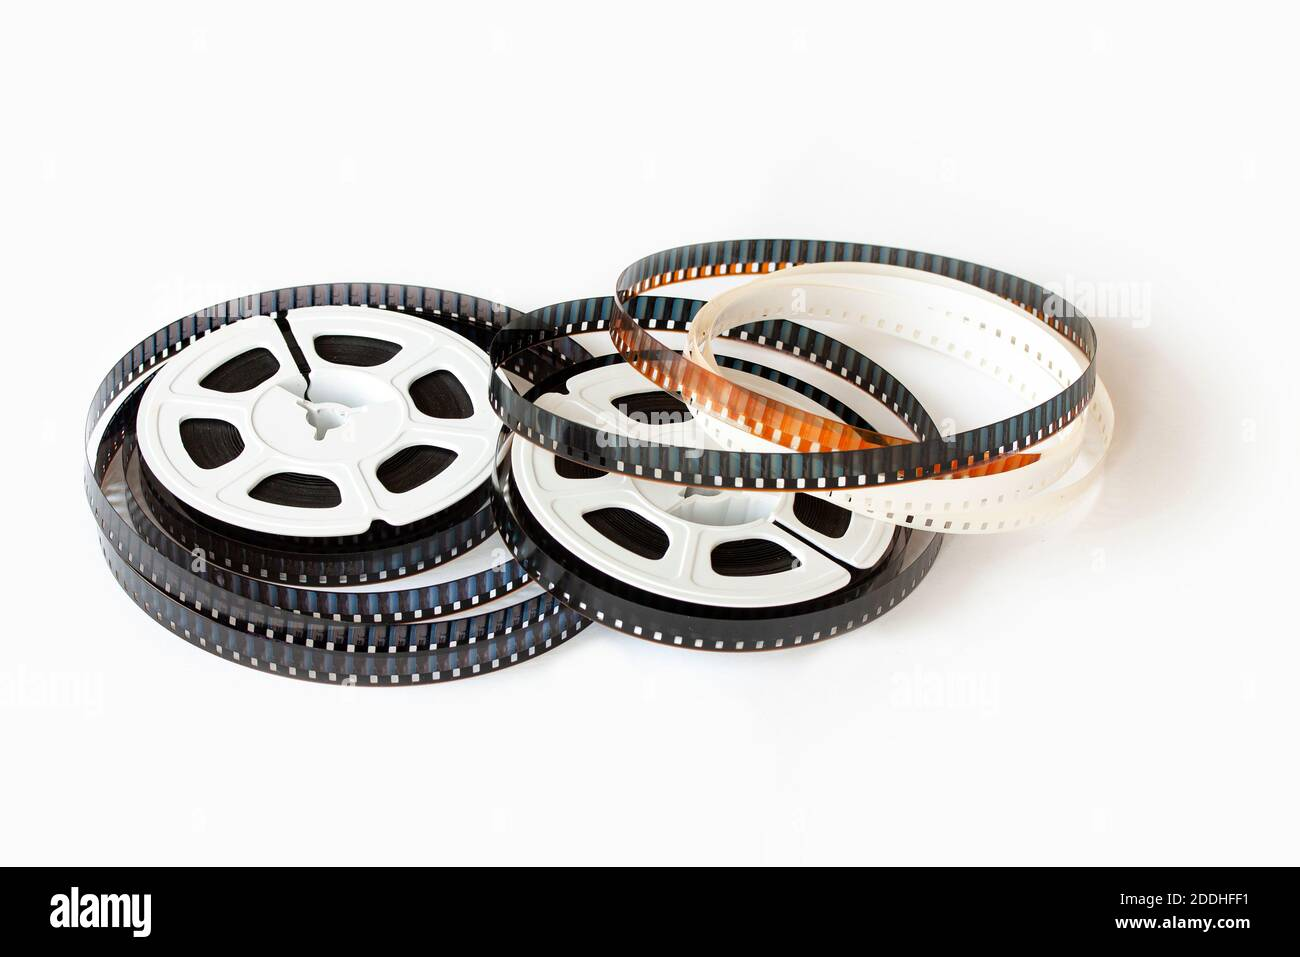 Two 8mm film reels with film strips scattered around. Studio shot. Close-up image isolated on white background. Stock Photo